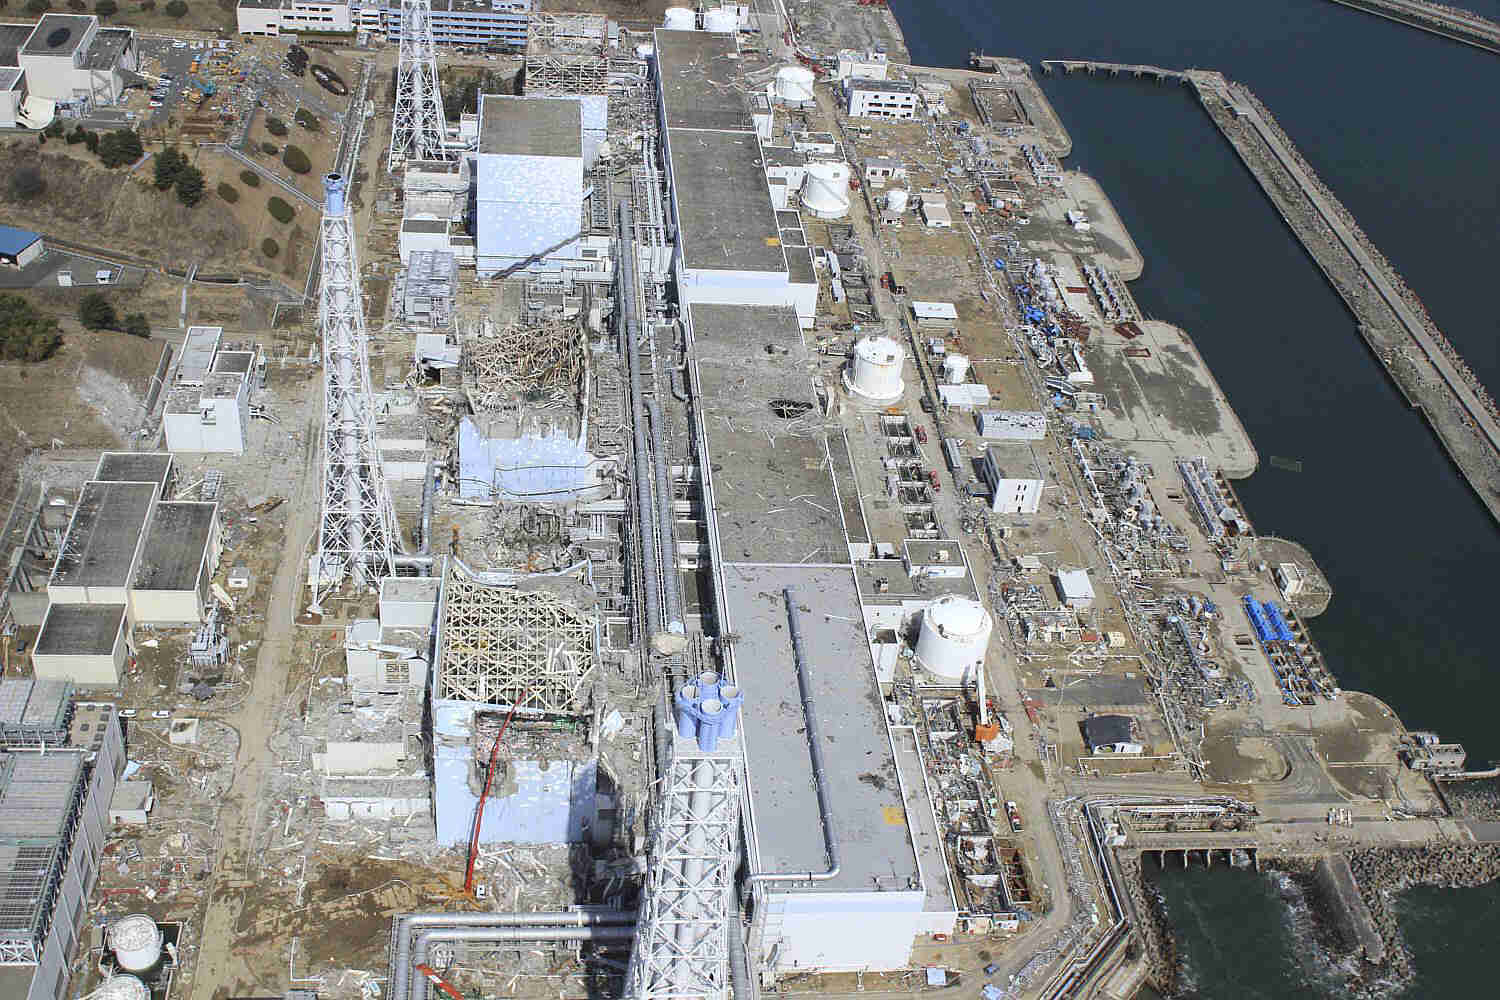 Fukushima daiichi nuclear power plant accident crisis nuclear site layout fukushima daiichi nuclear power plant ccuart Gallery